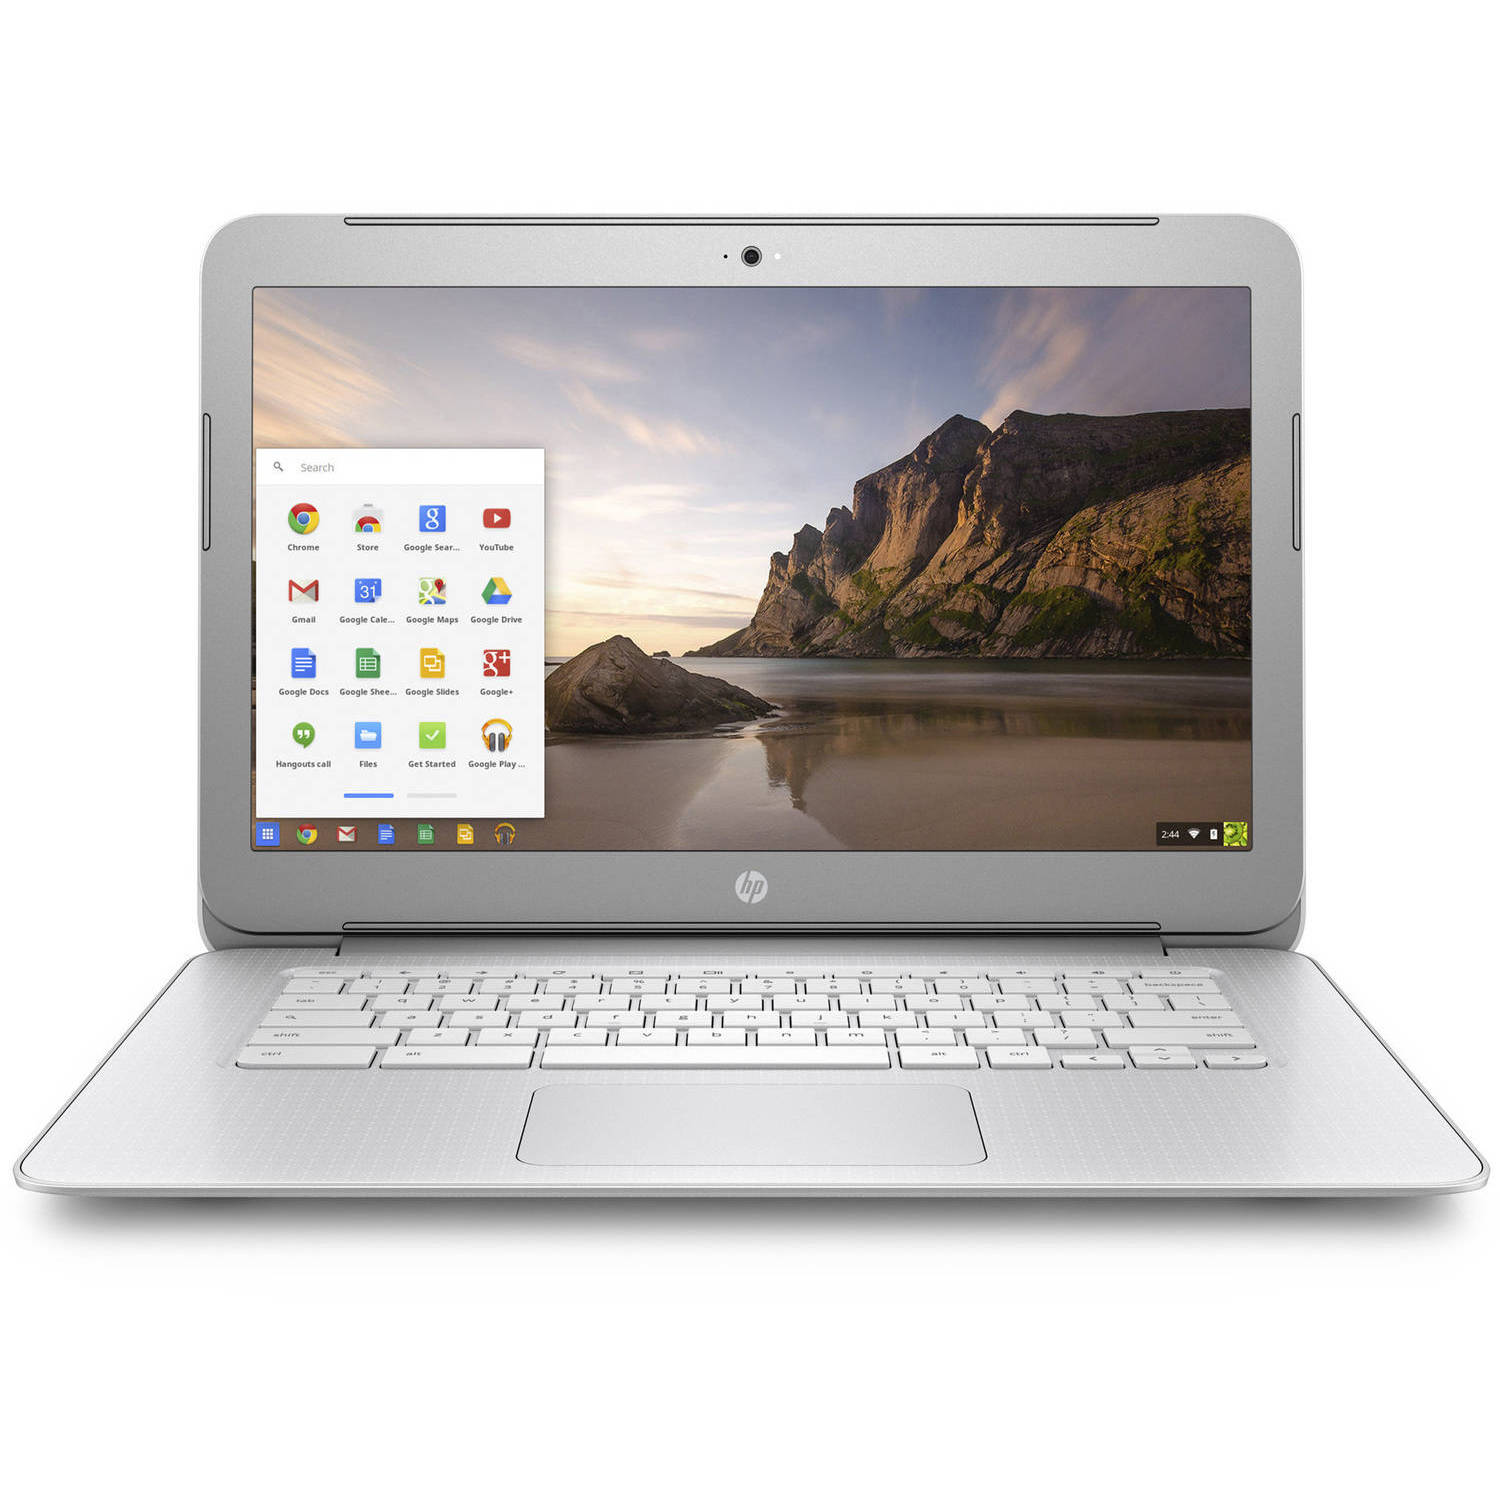 "Refurbished HP 14-ak040wm 14"" Chromebook, Chrome, Intel Celeron N2940 Processor, 4GB RAM, 16GB eMMC Drive"